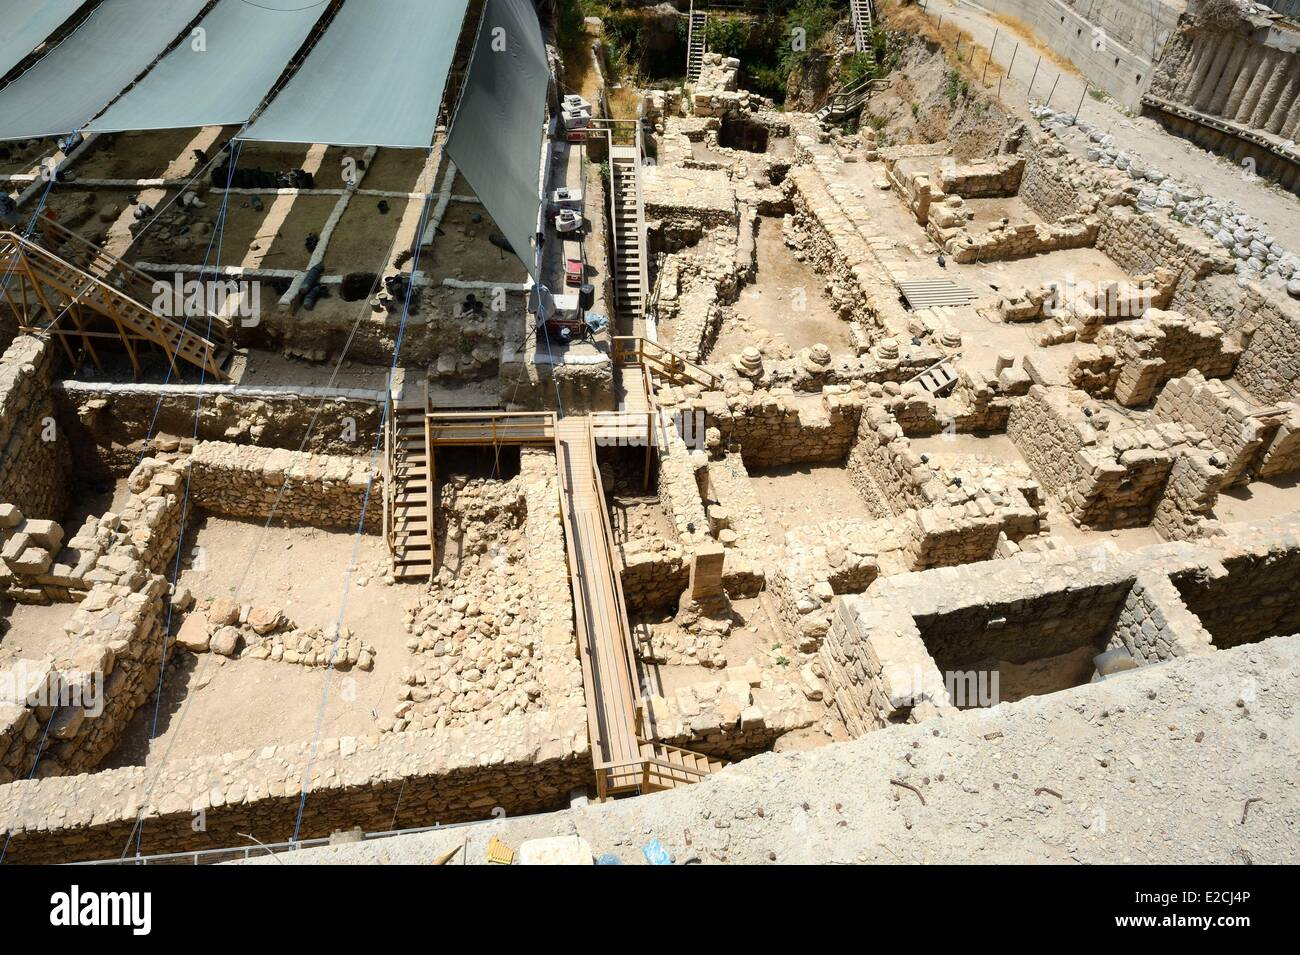 Israel, Jerusalem, holy city, the City of David south of the old town, excavation - Stock Image